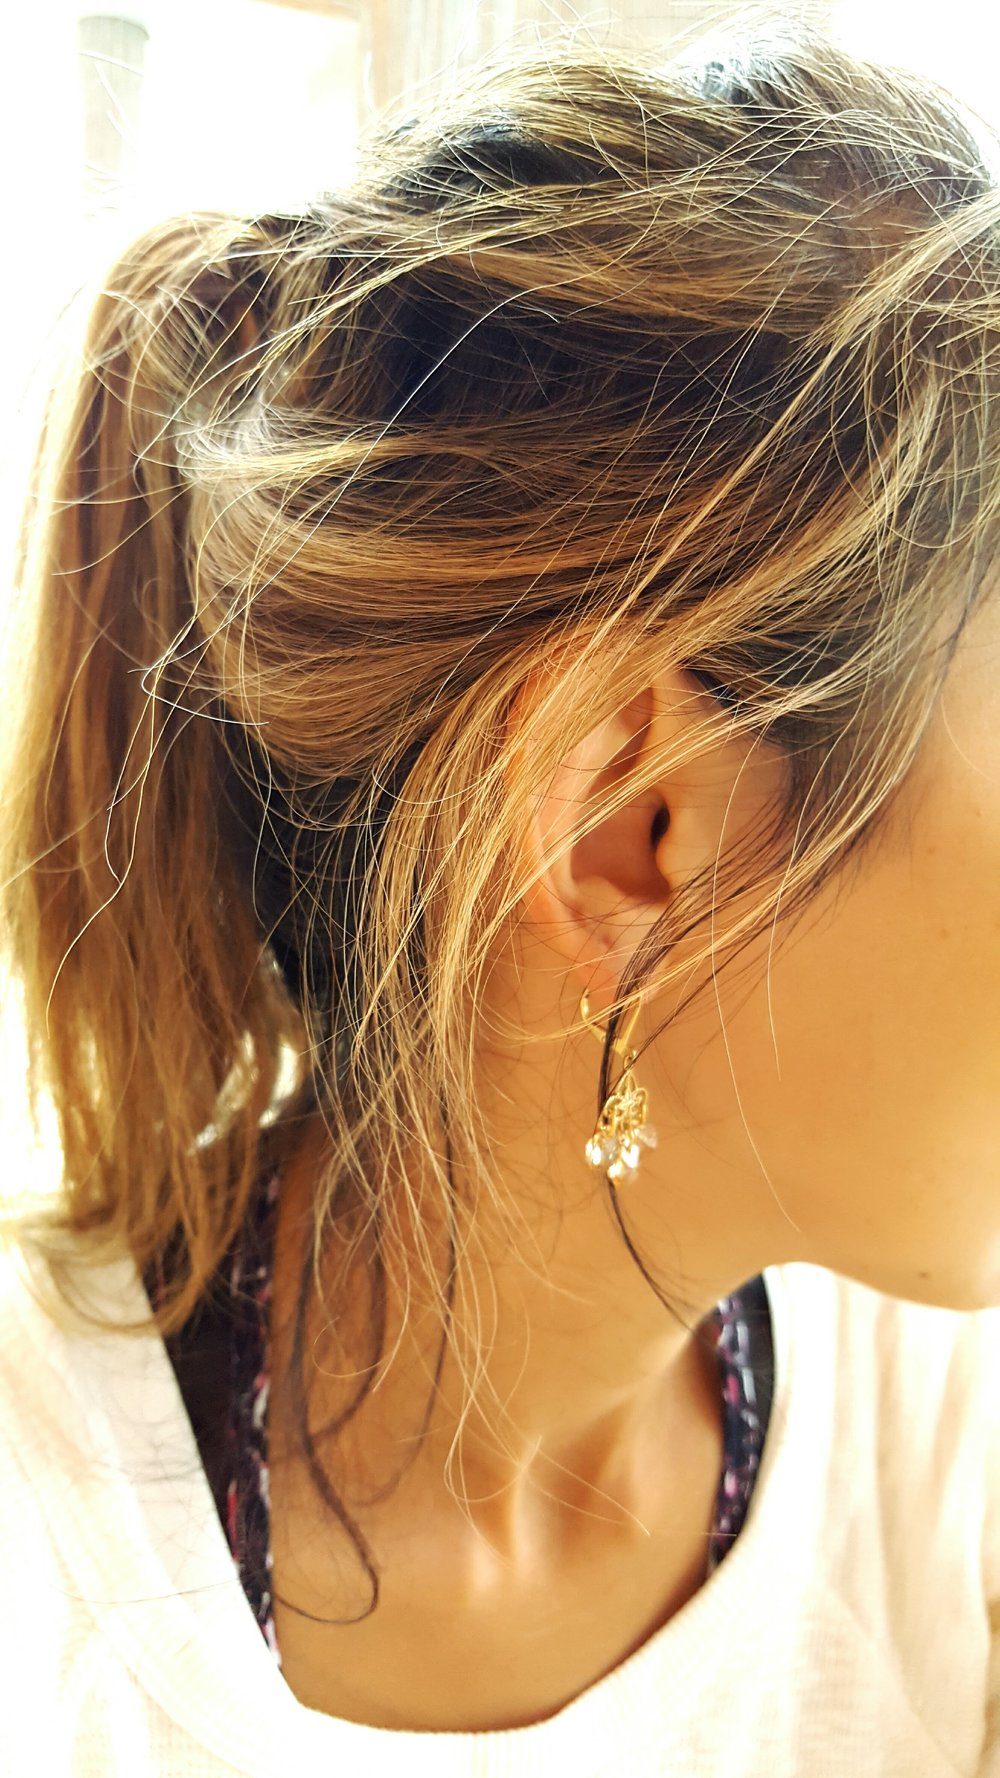 Loving these Chandelier earrings - light and dainty - from Jovi in Newport, Oregon